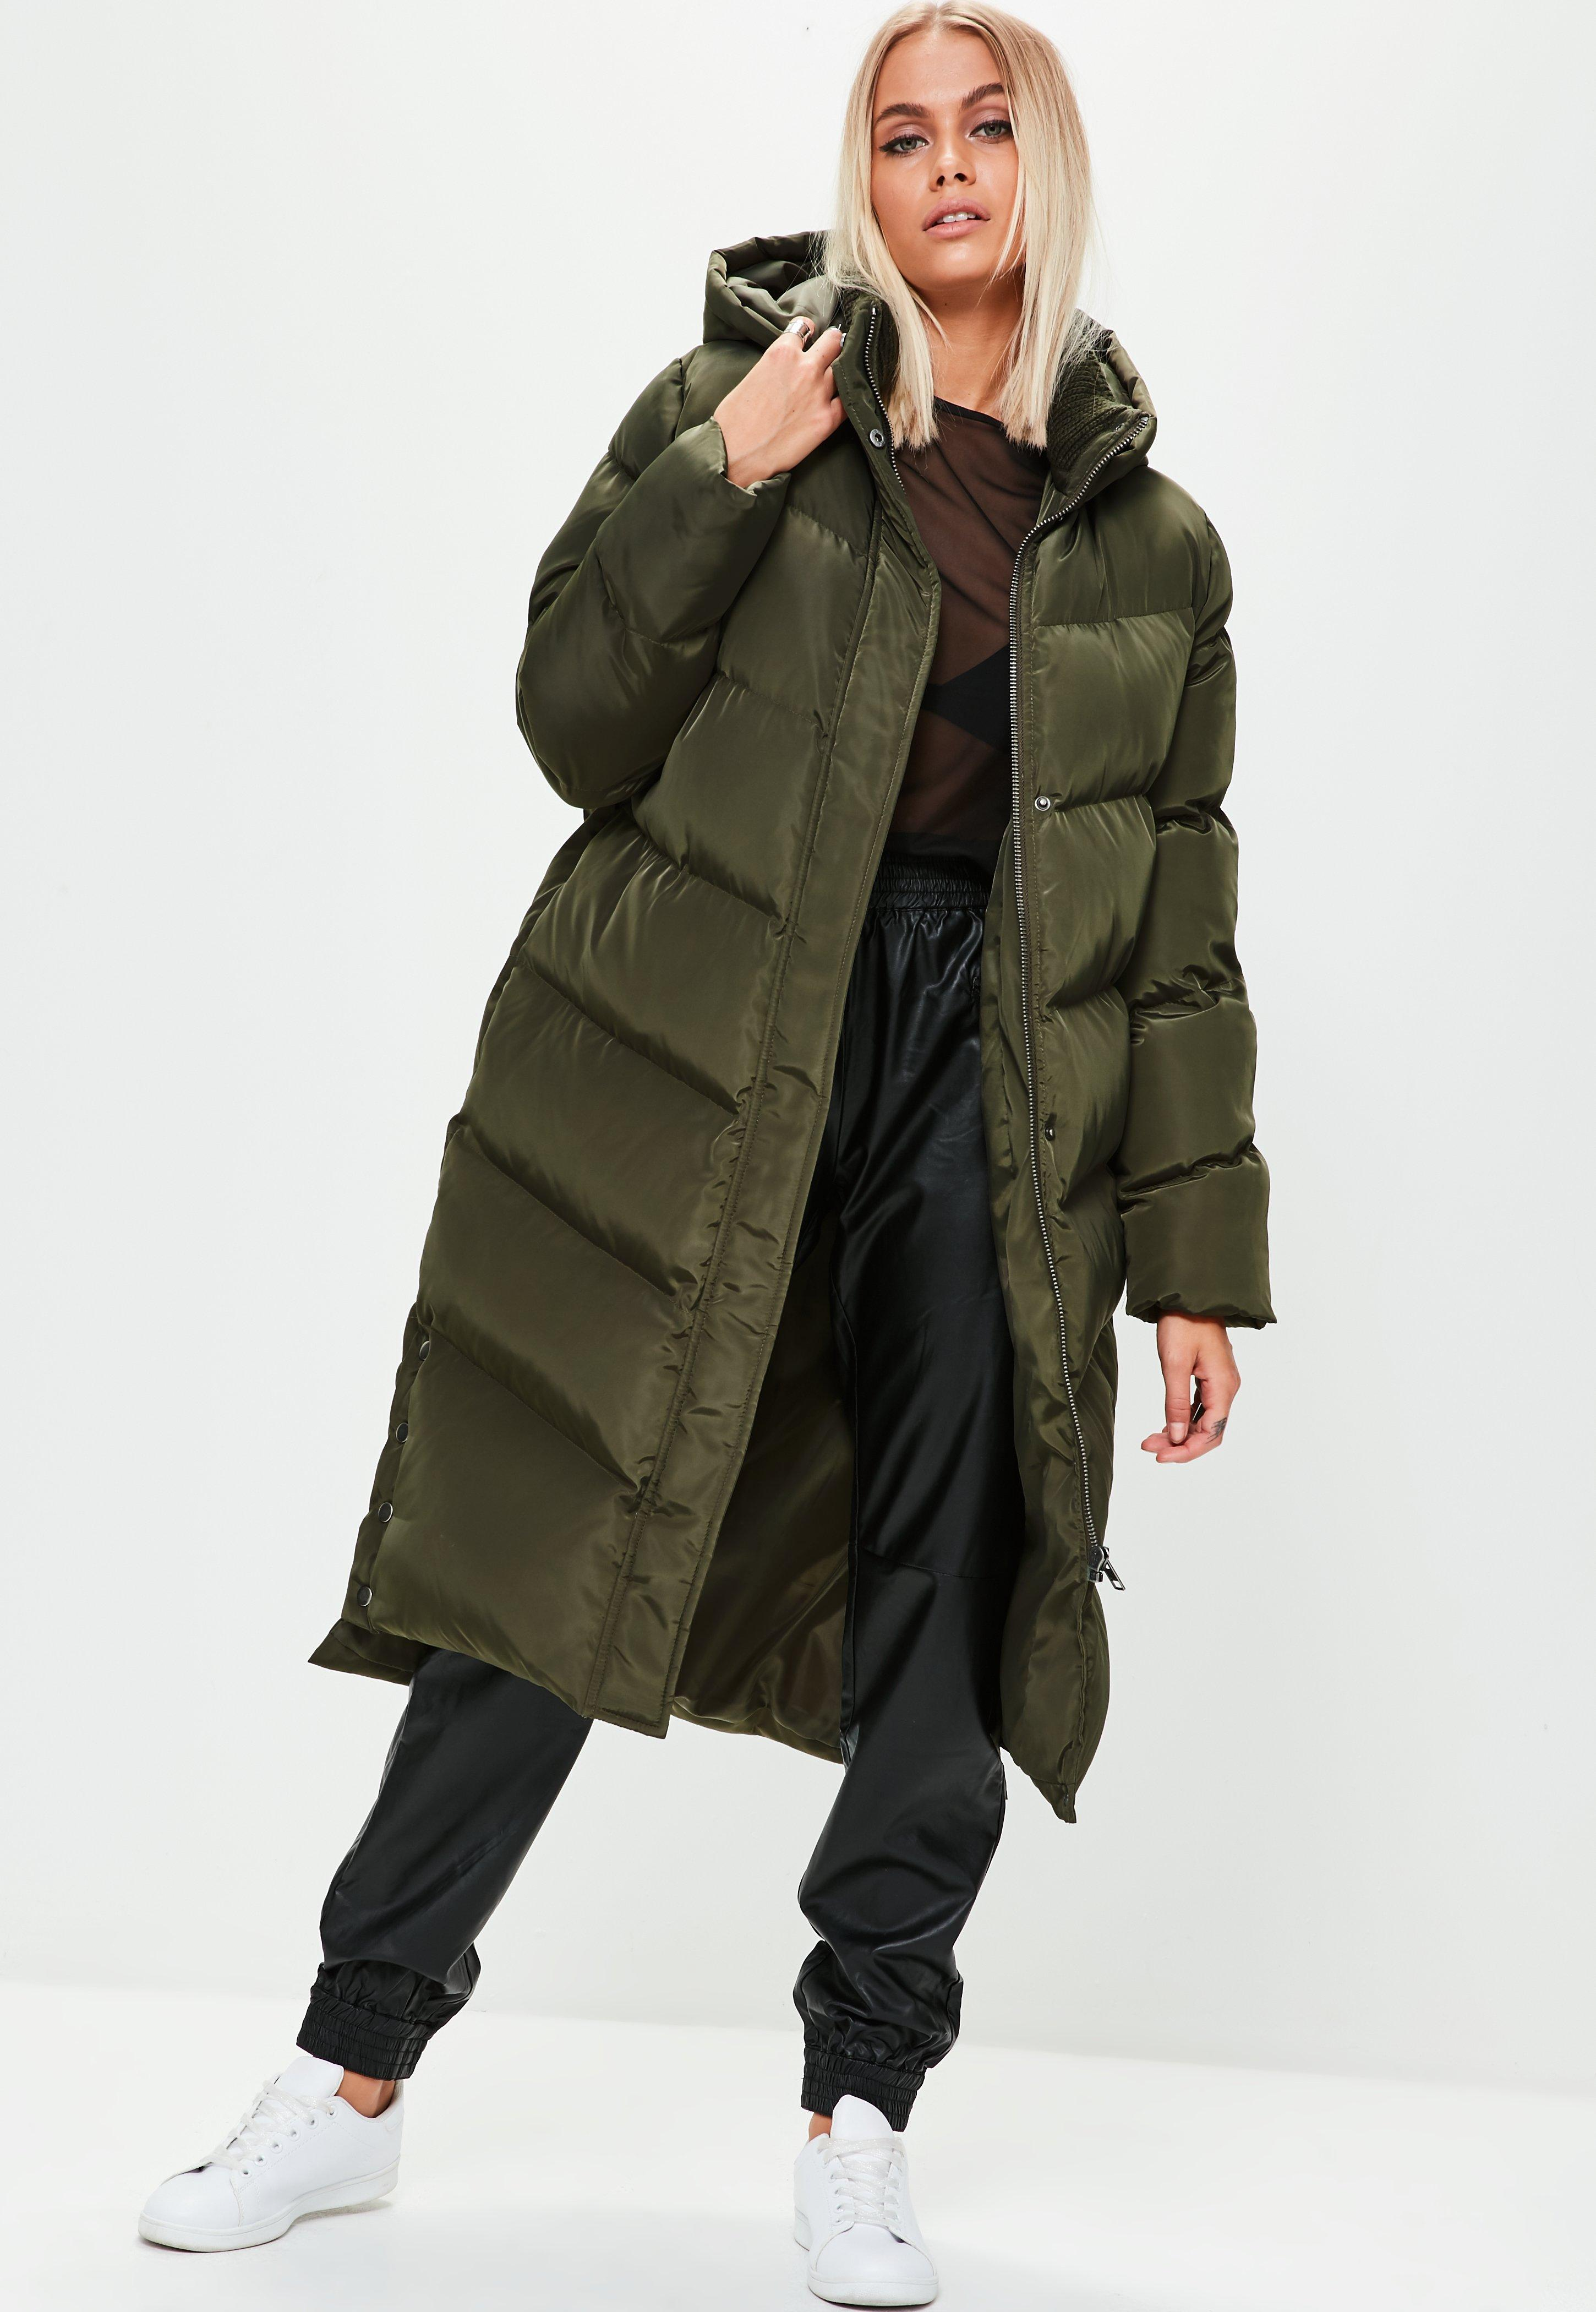 Winter fashion with puffer coat